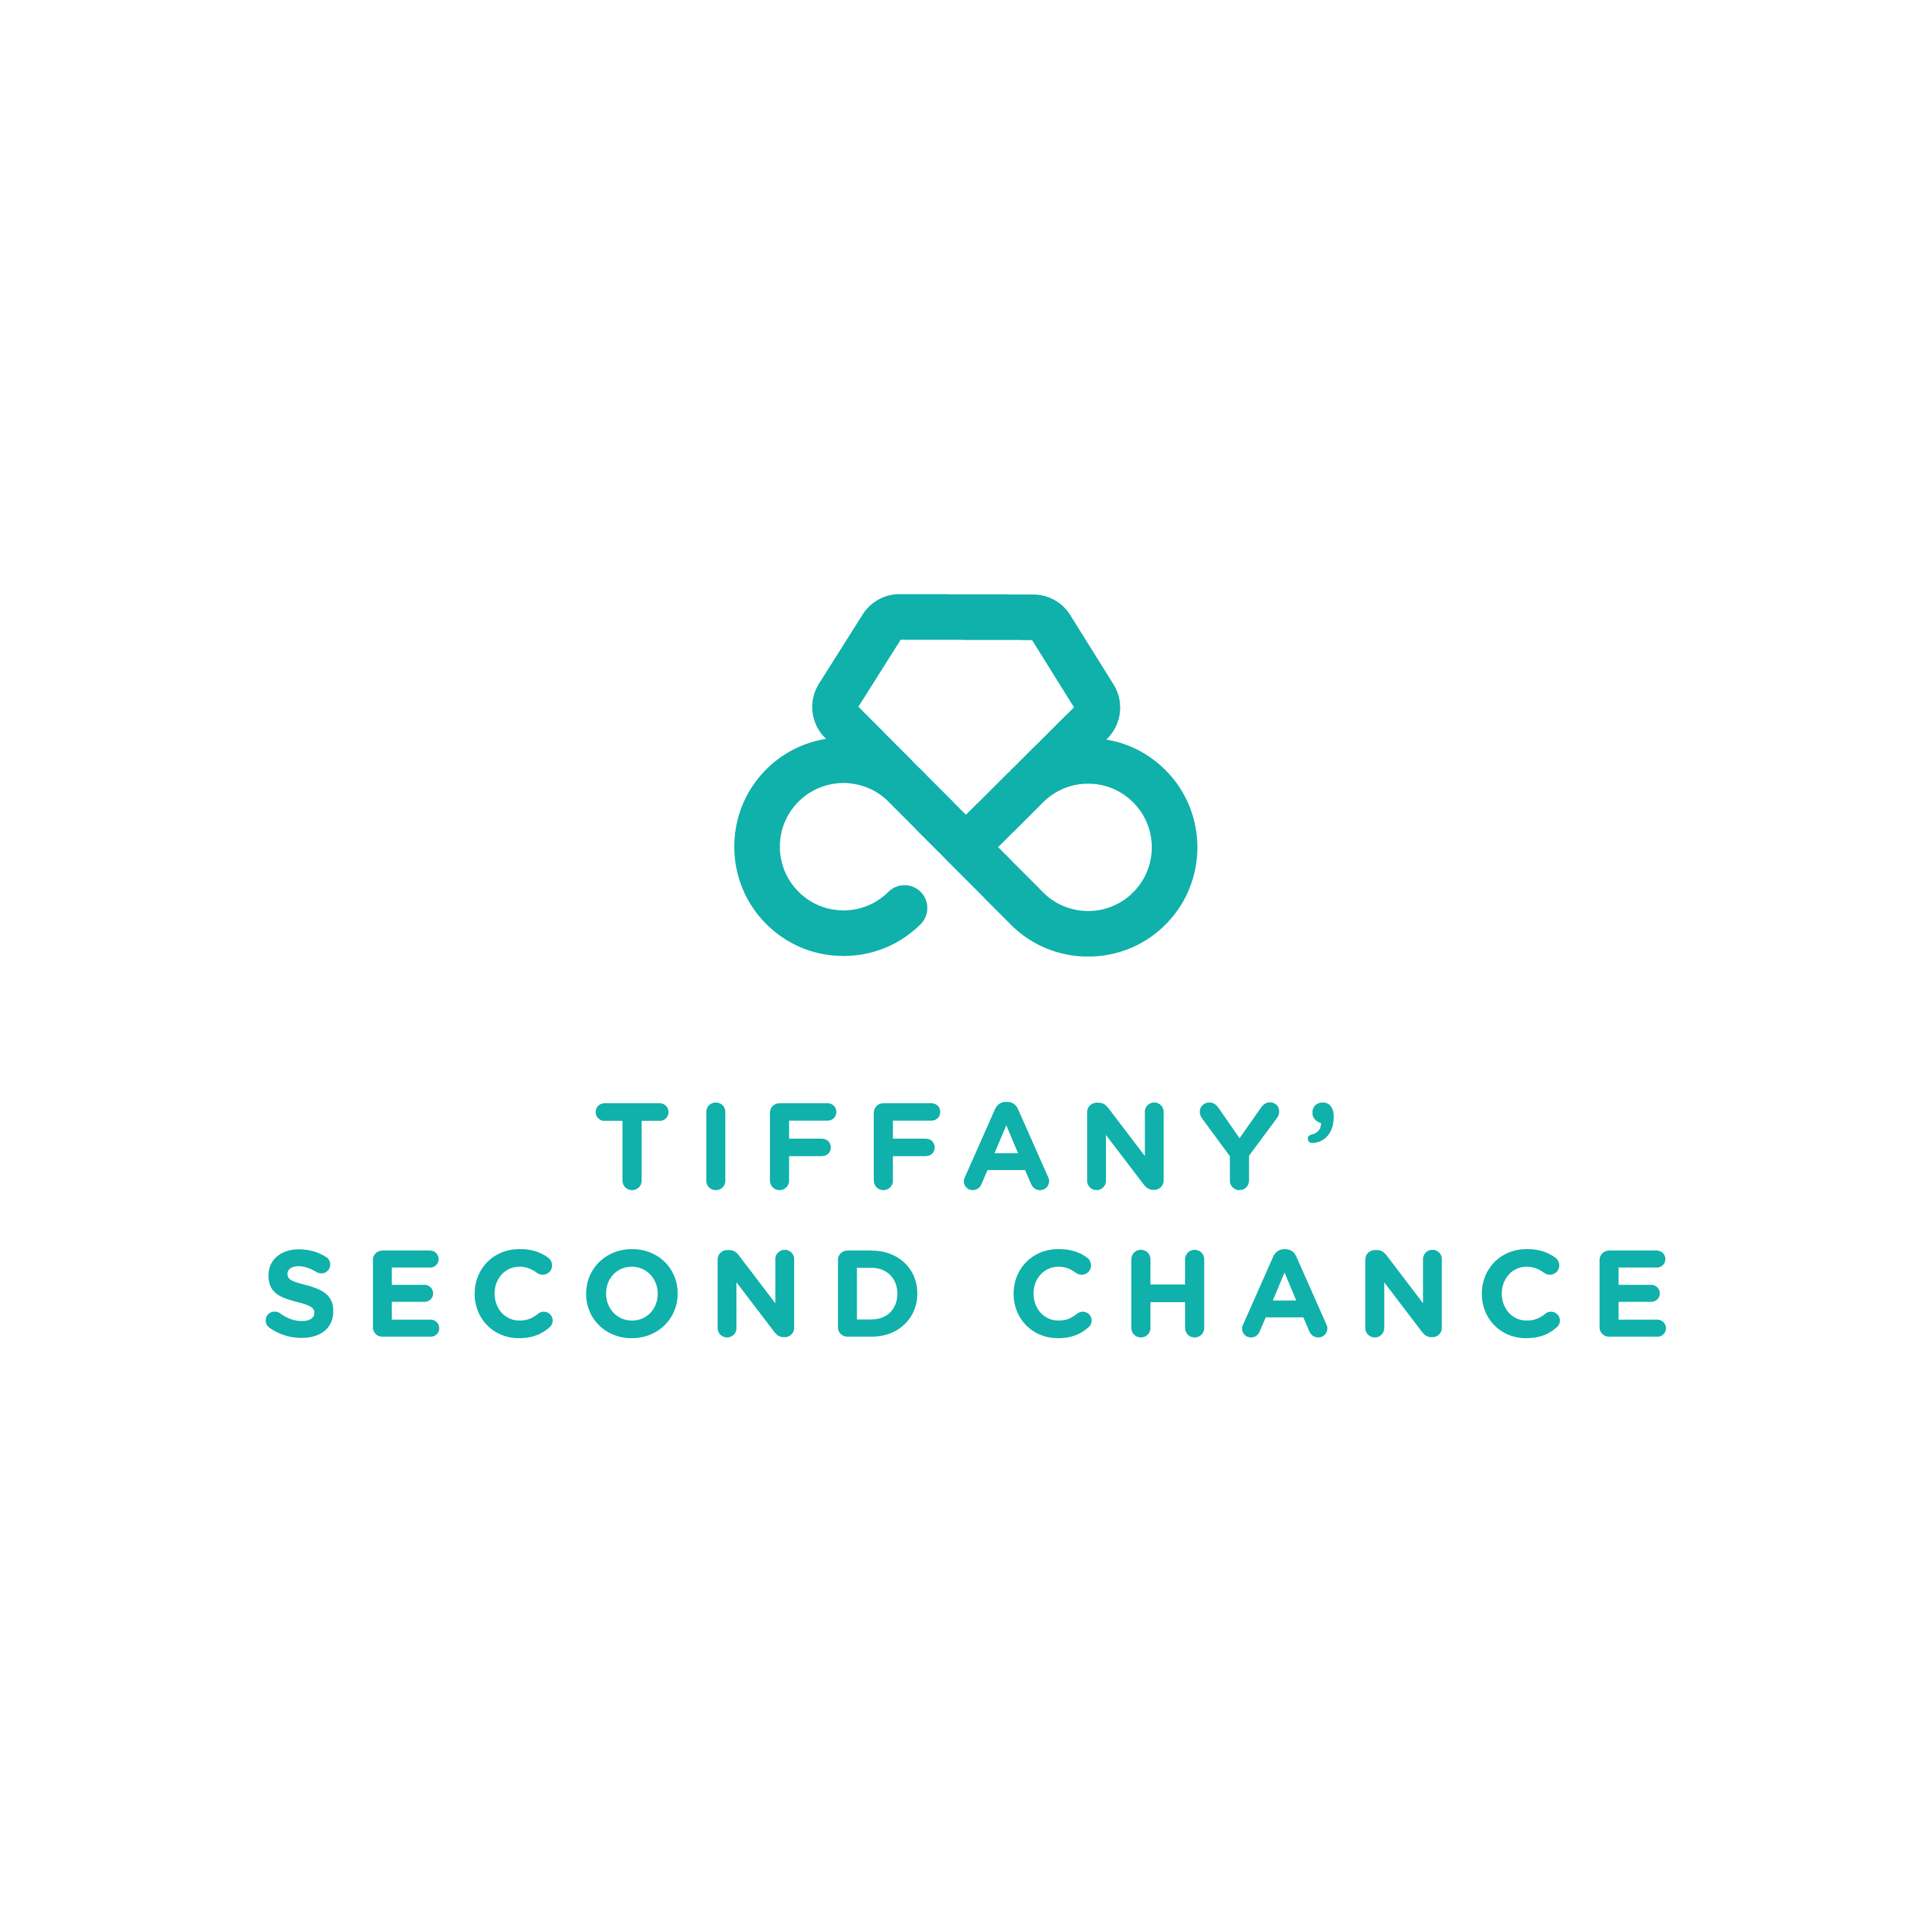 Tiffany' Second Chance